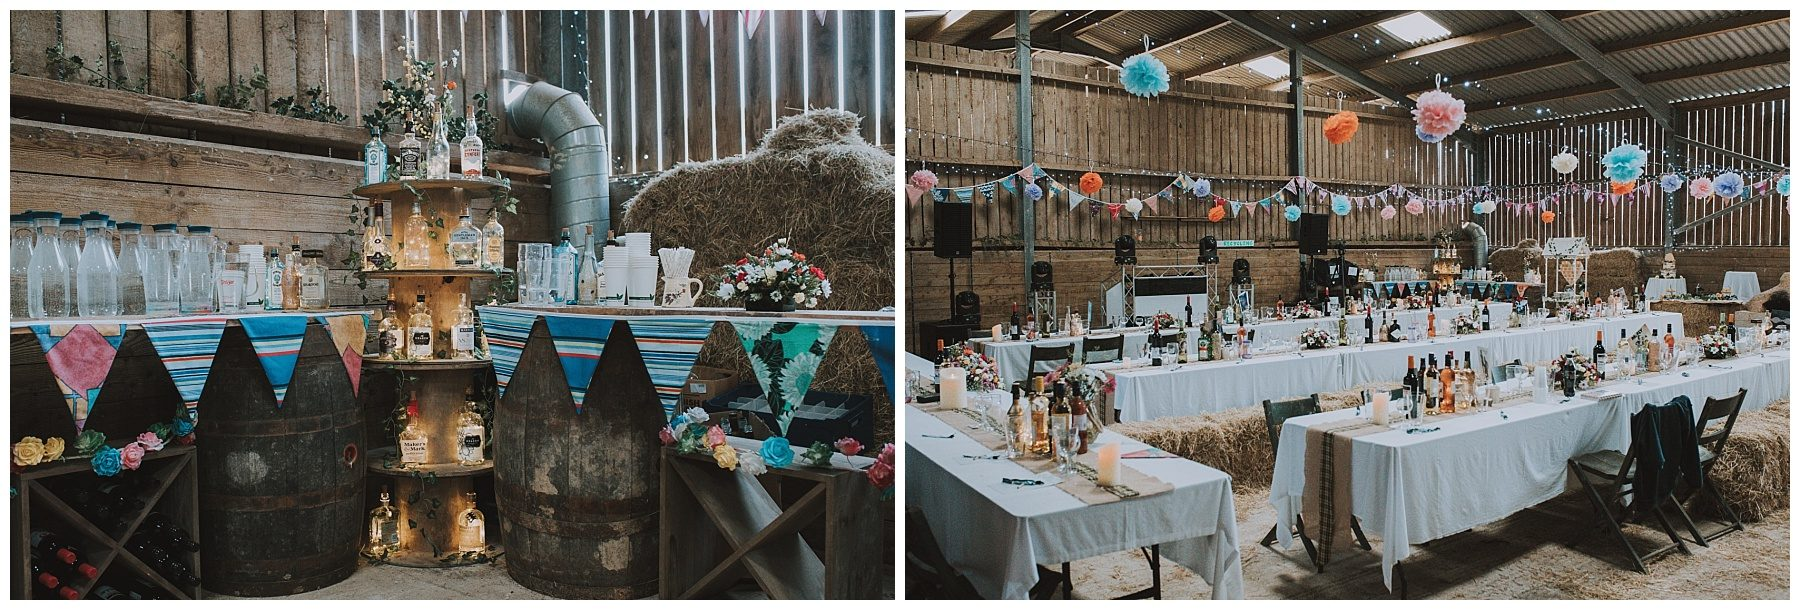 Farm barn wedding details